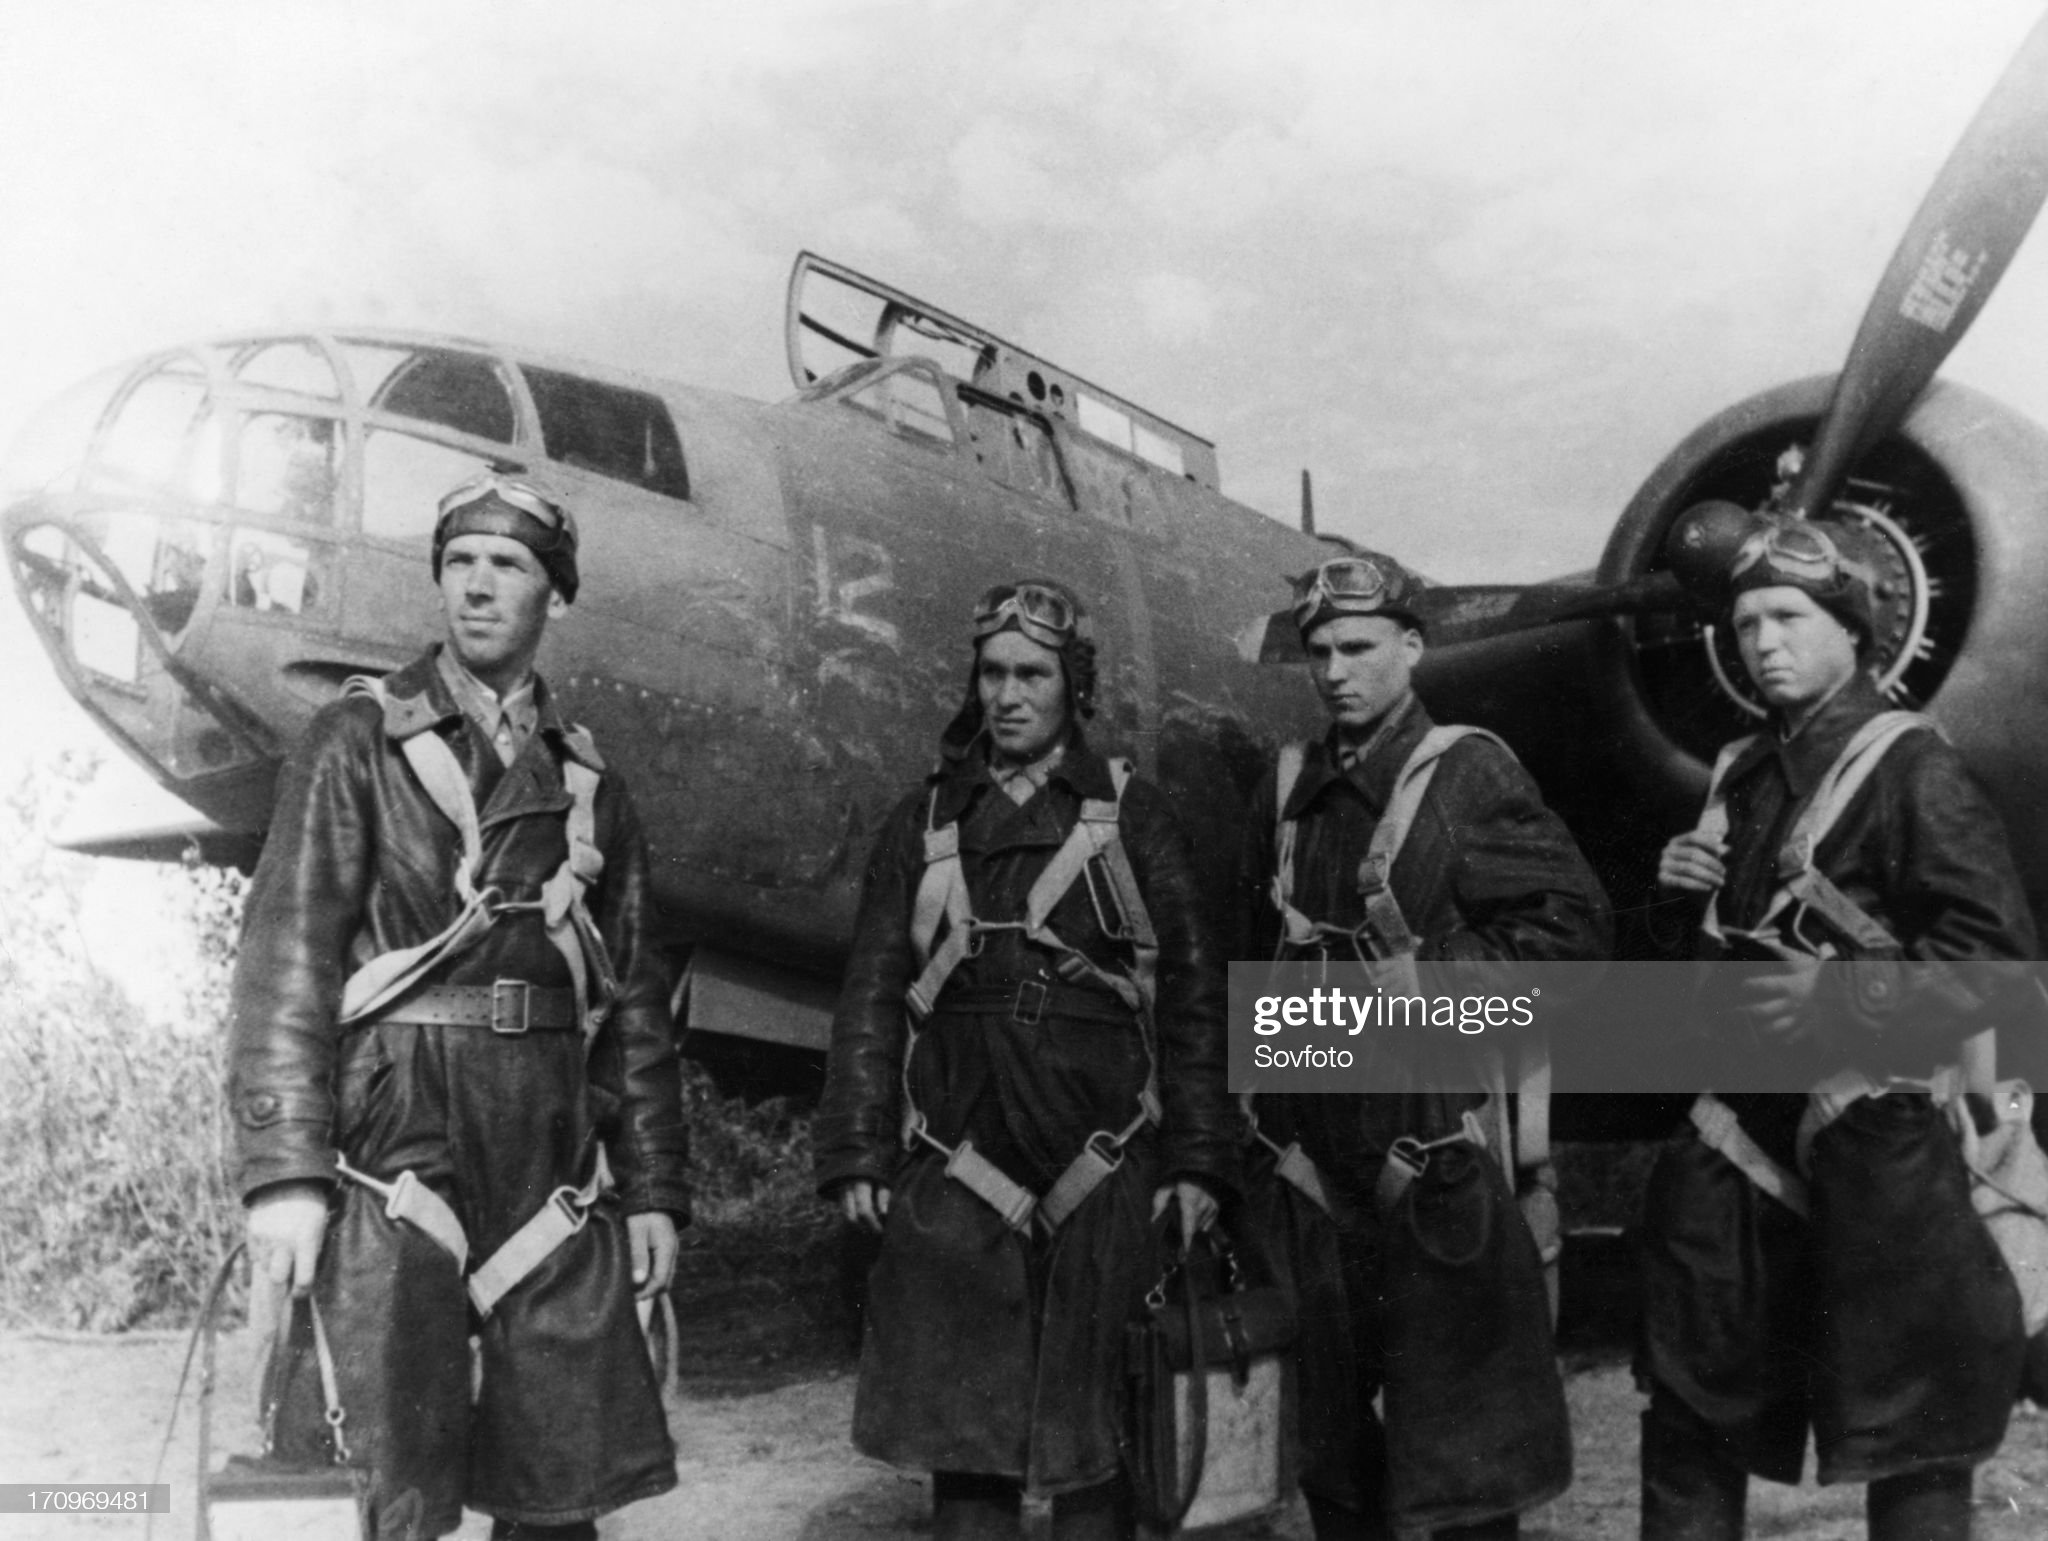 soviet-airforce-night-bomber-crew-with-a